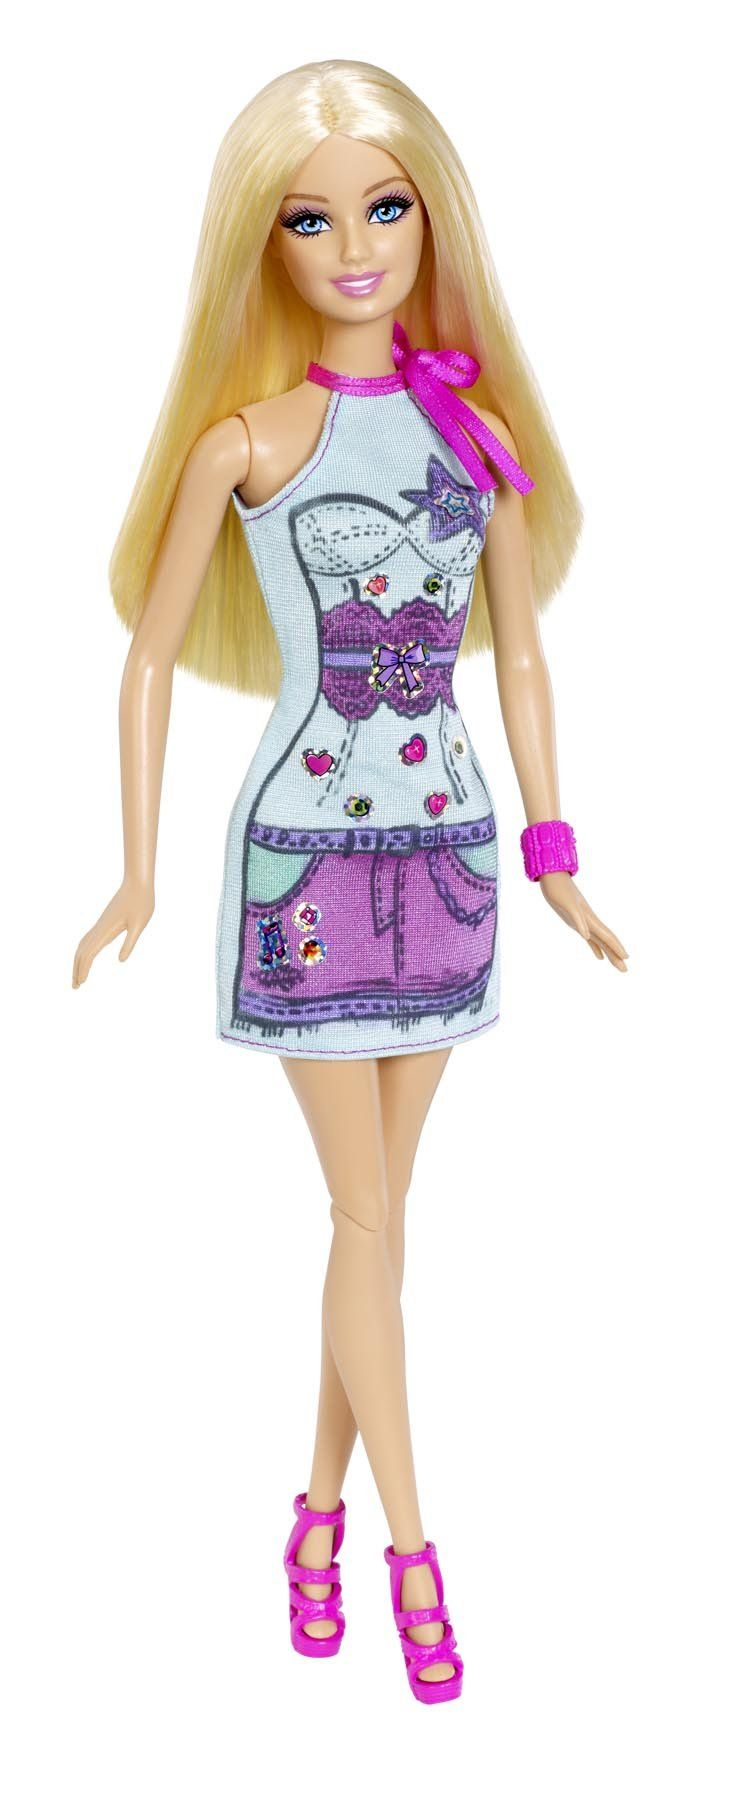 Best Barbie Dolls And Toys : Best images about barbie on pinterest toys r us